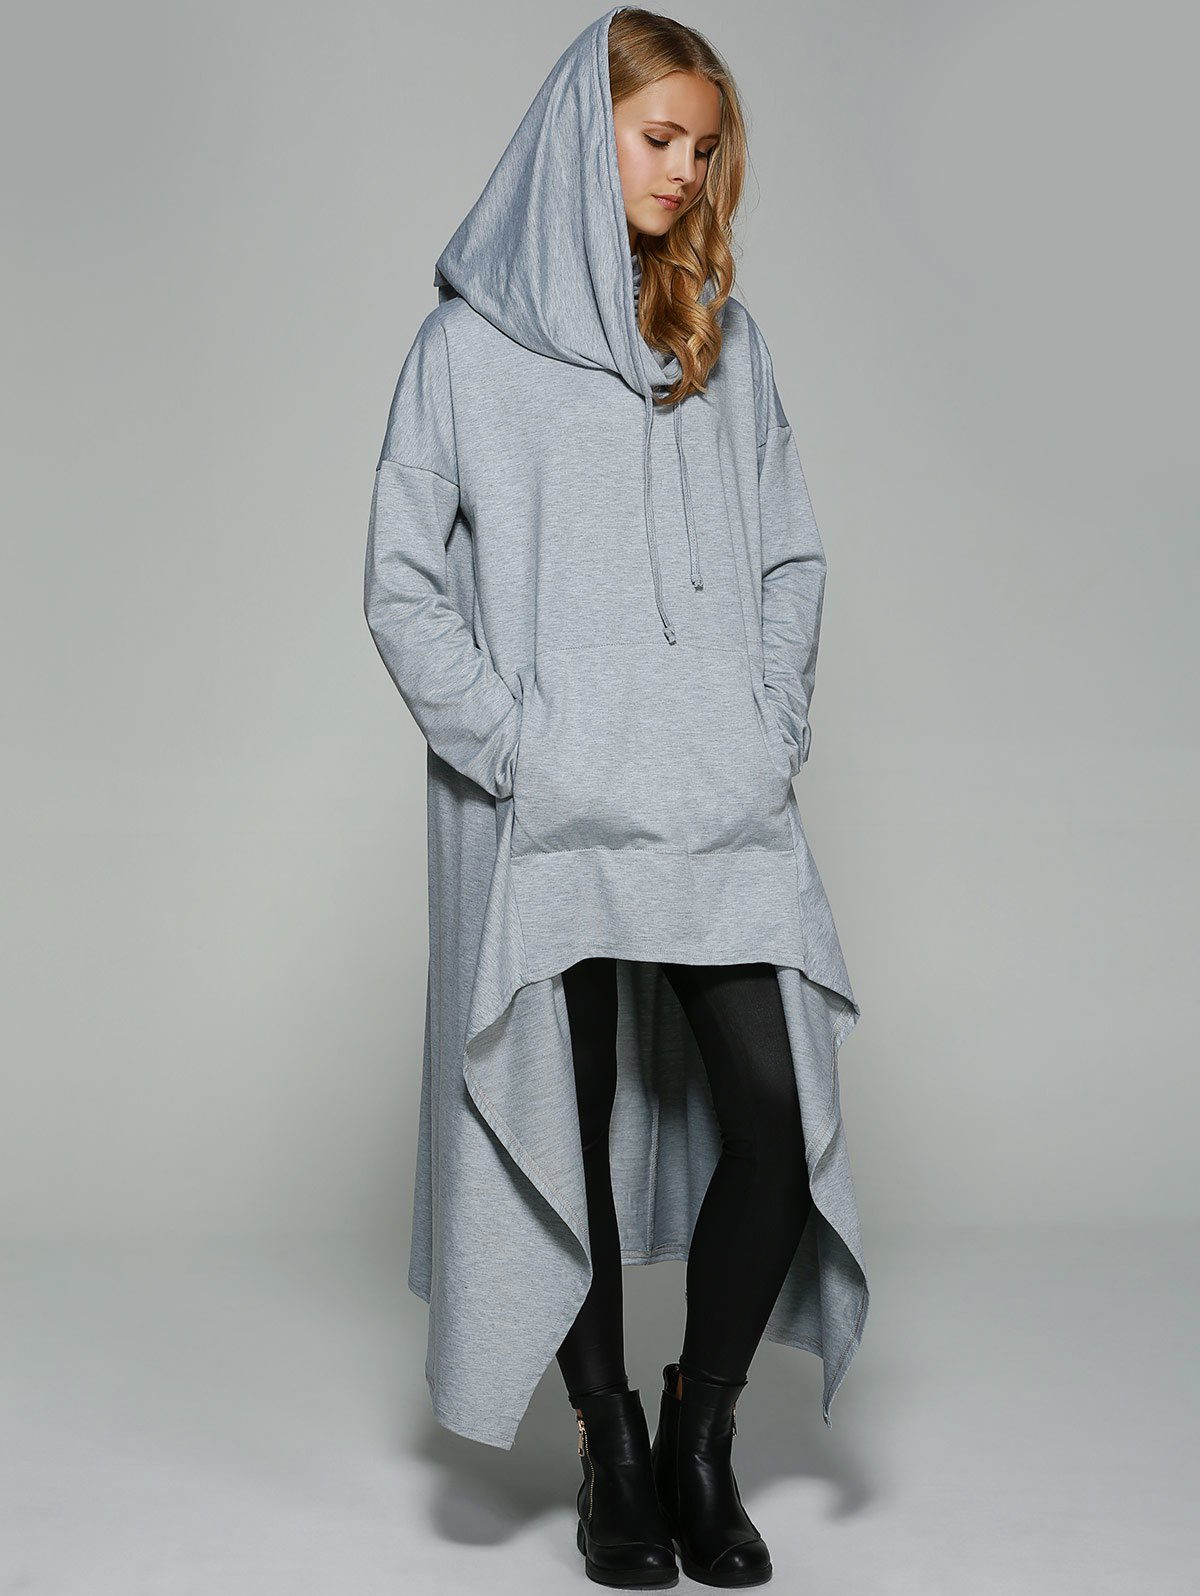 Asymmetrical Pocket Design Loose-Fitting Neck Hoodie - LIGHT GRAY M